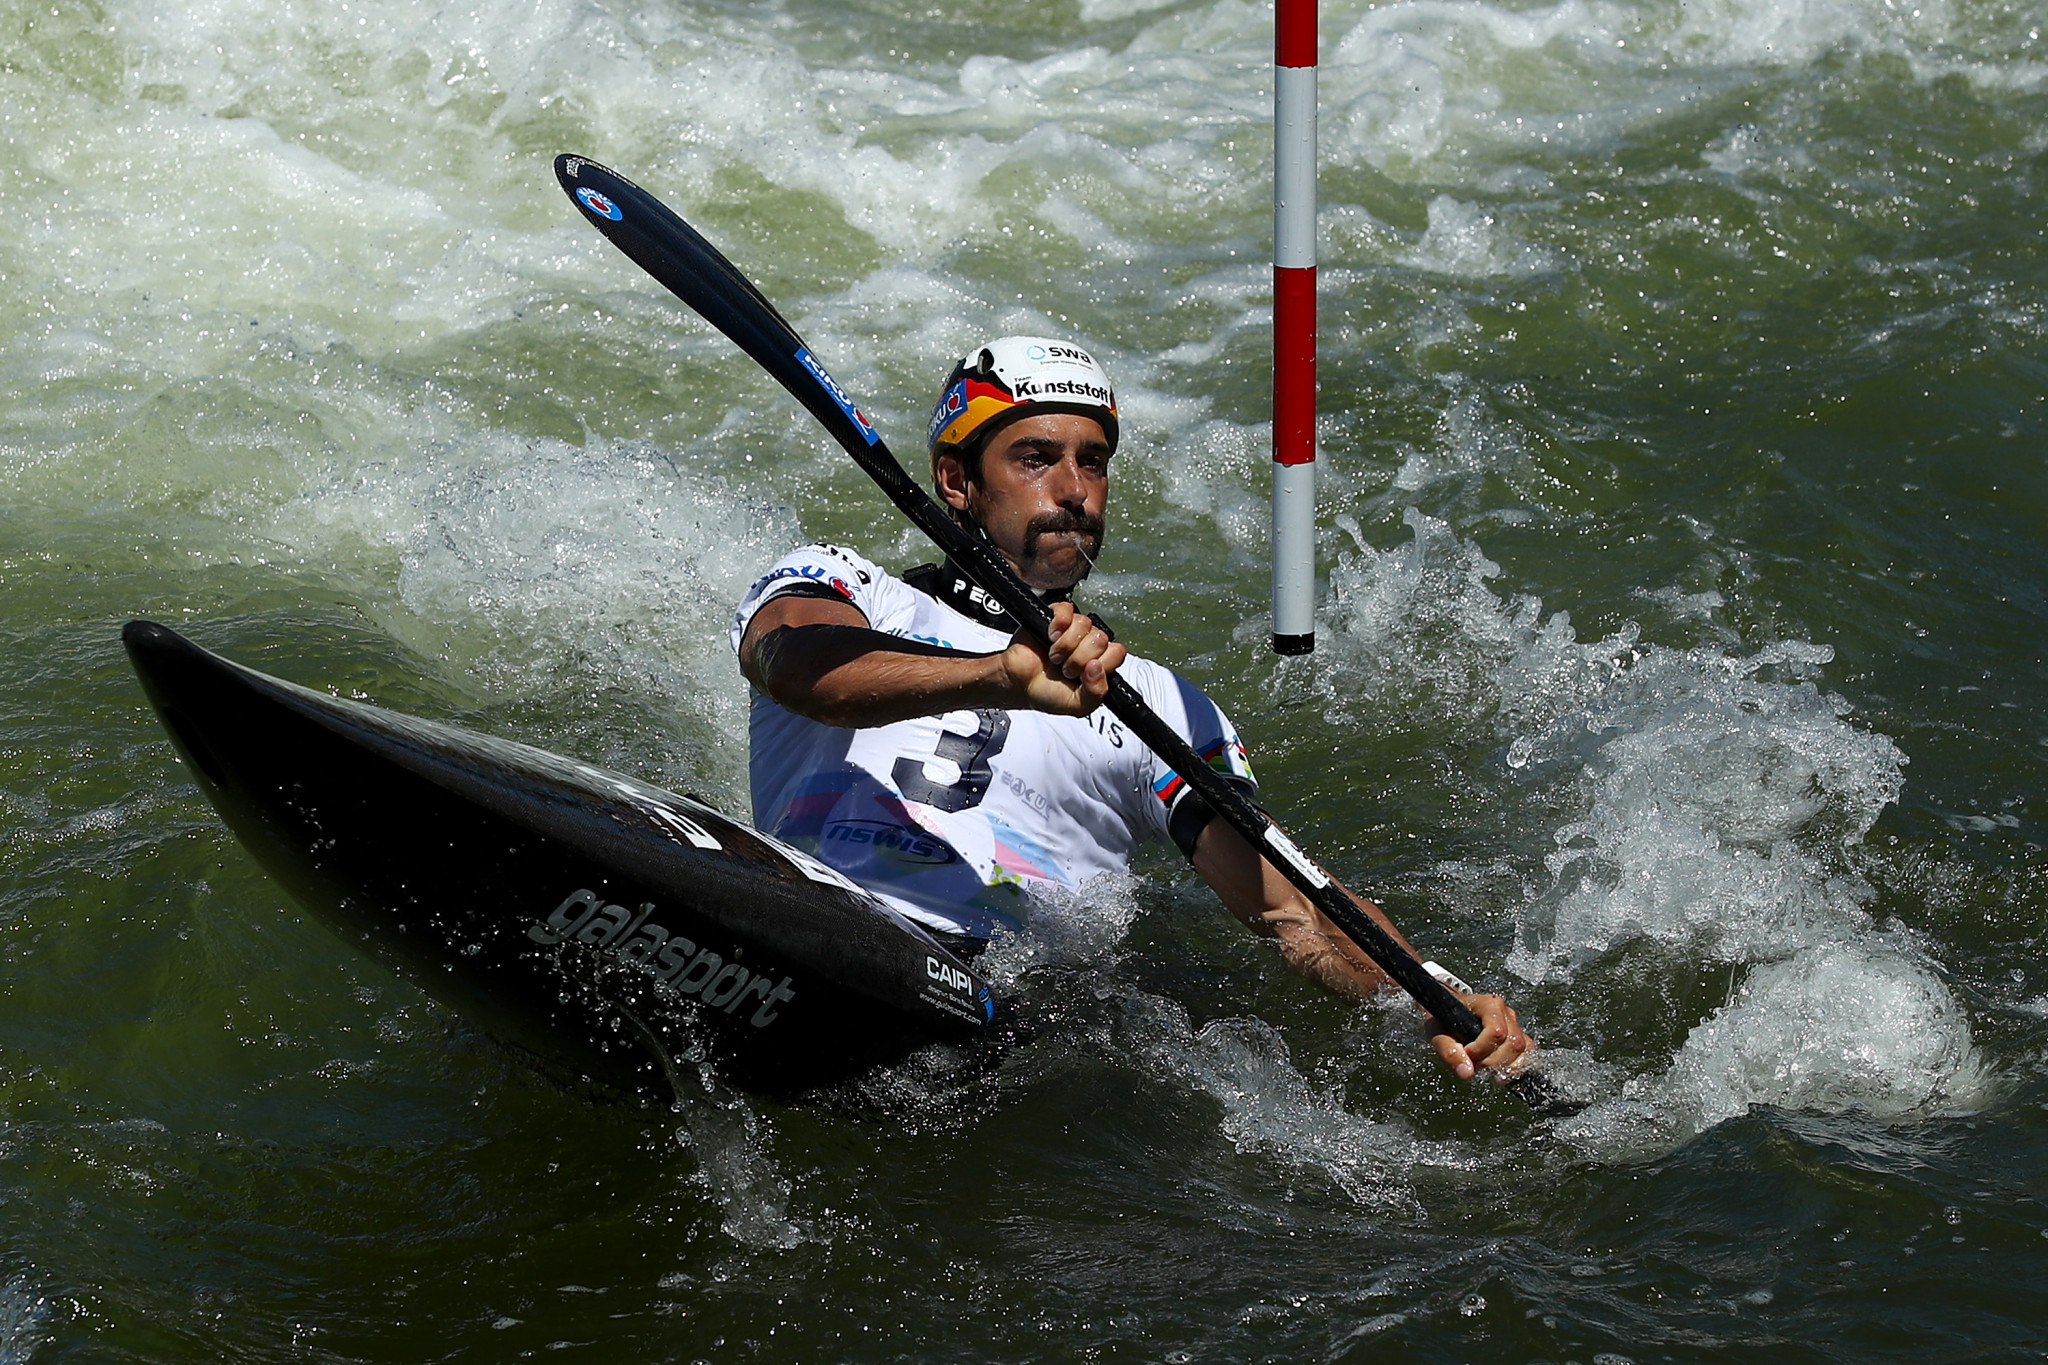 Germany's world champion Hannes Aigner is among the entrants for the men's K1 event ©Getty Images